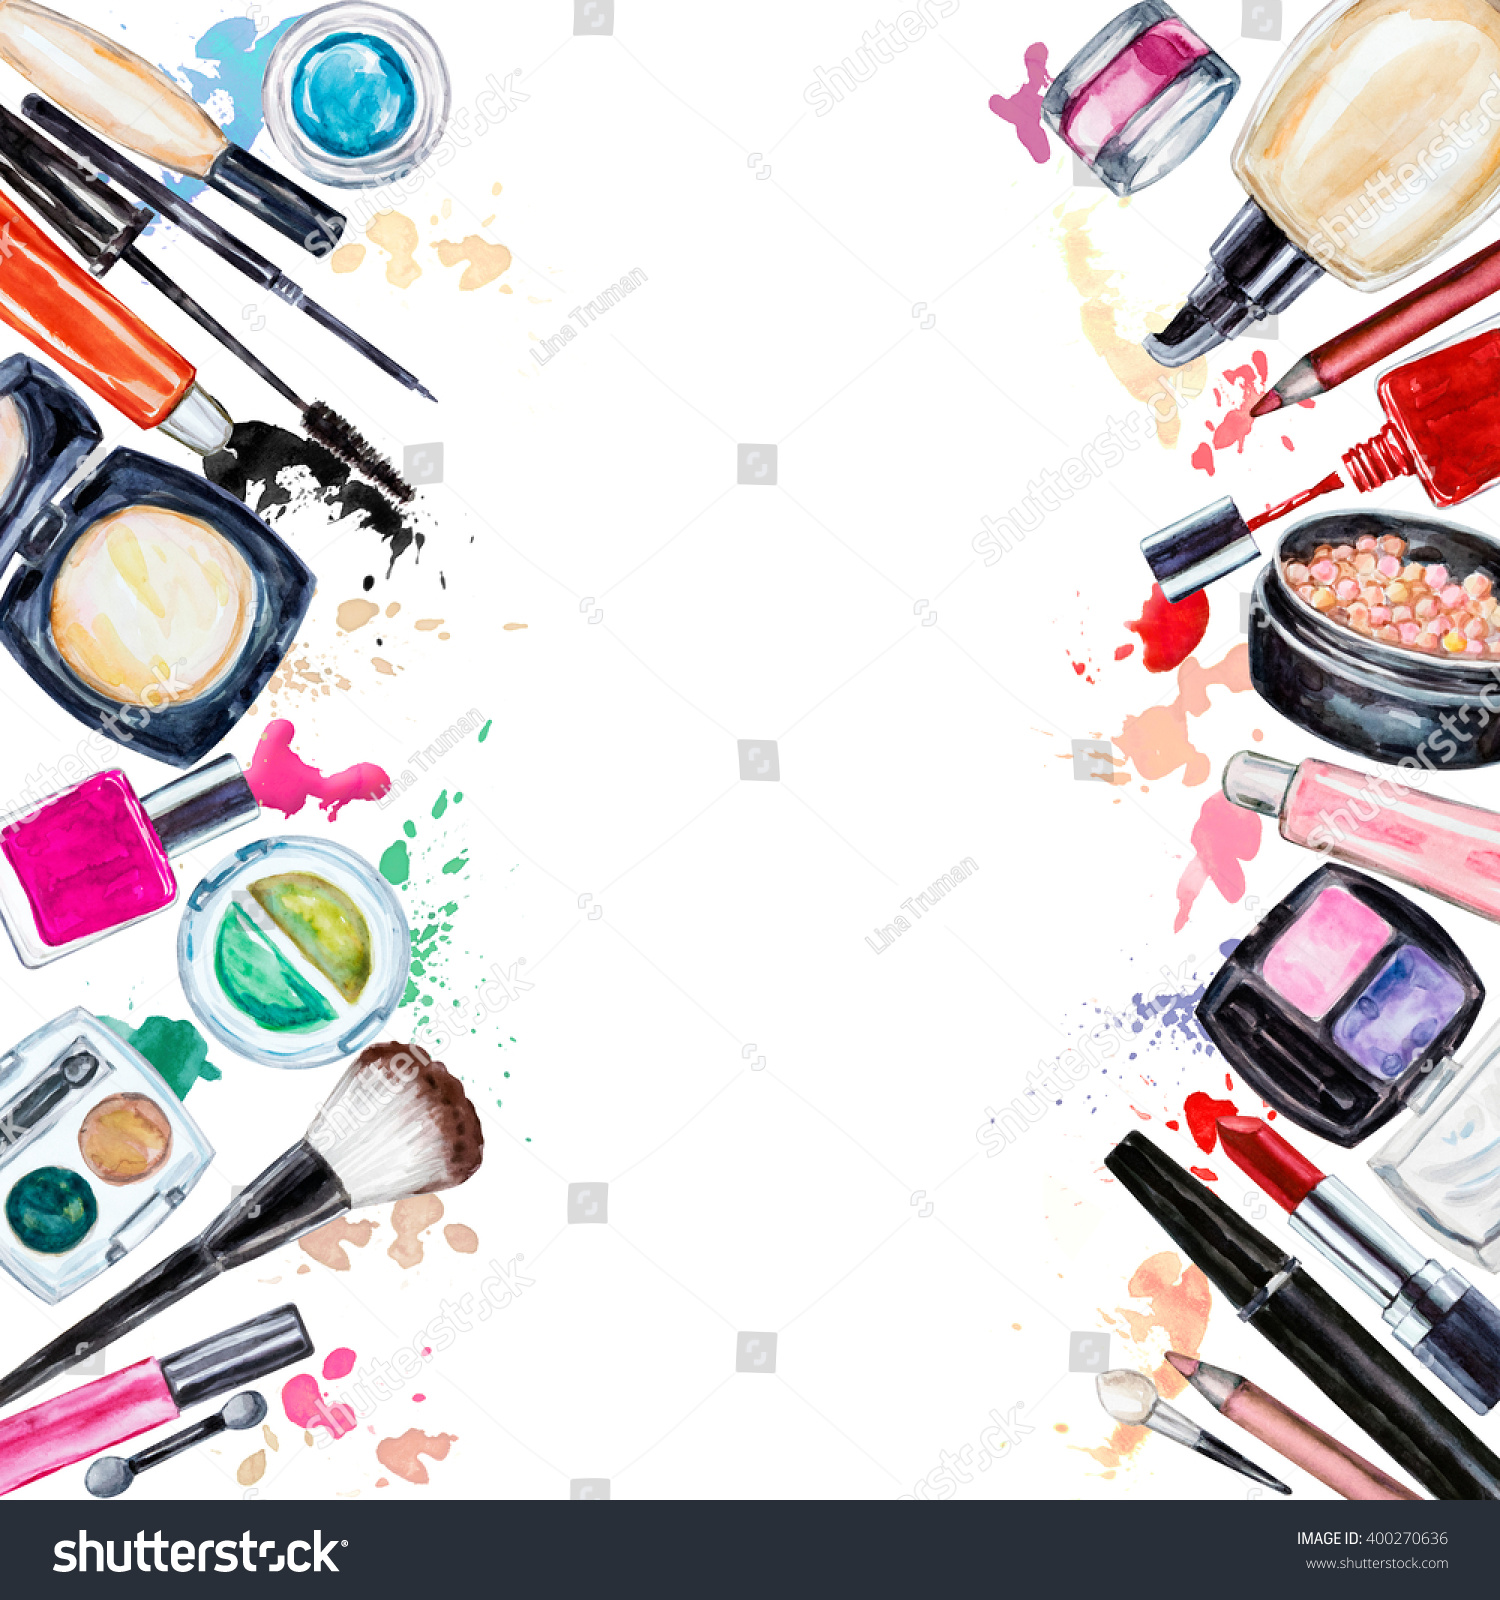 Beauty In Frame: Frame Various Watercolor Decorative Cosmetic Makeup Stock